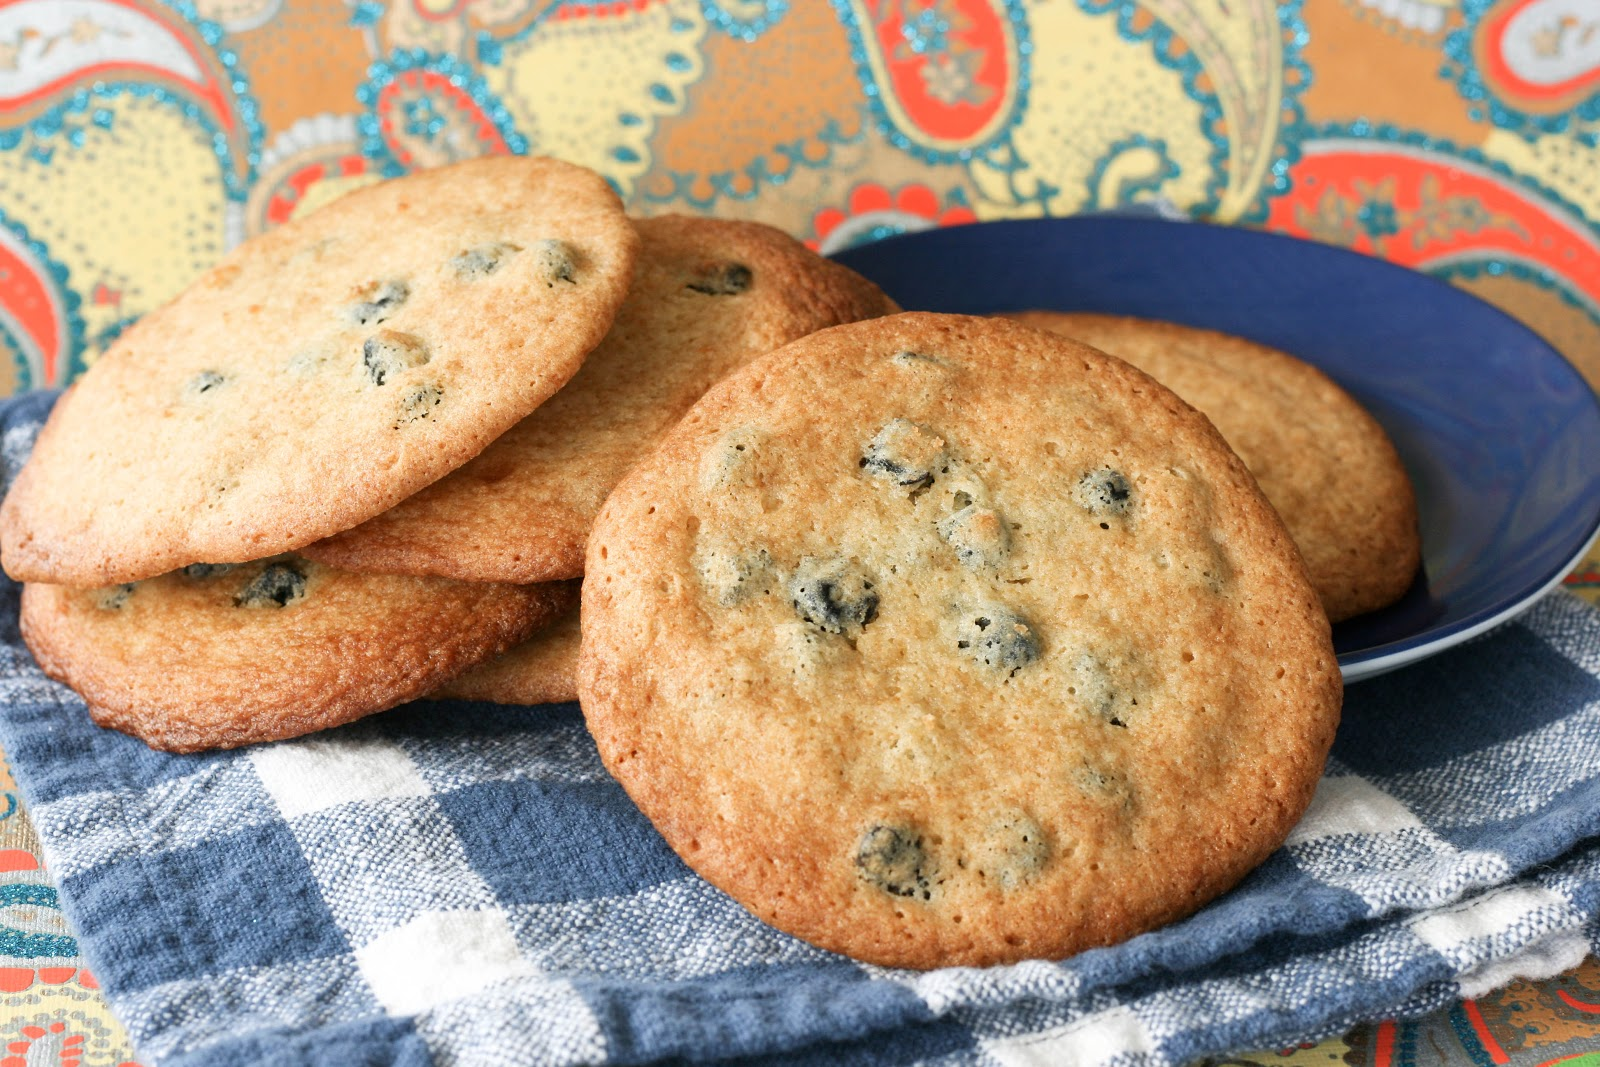 heard we were making these blueberry and cream cookies